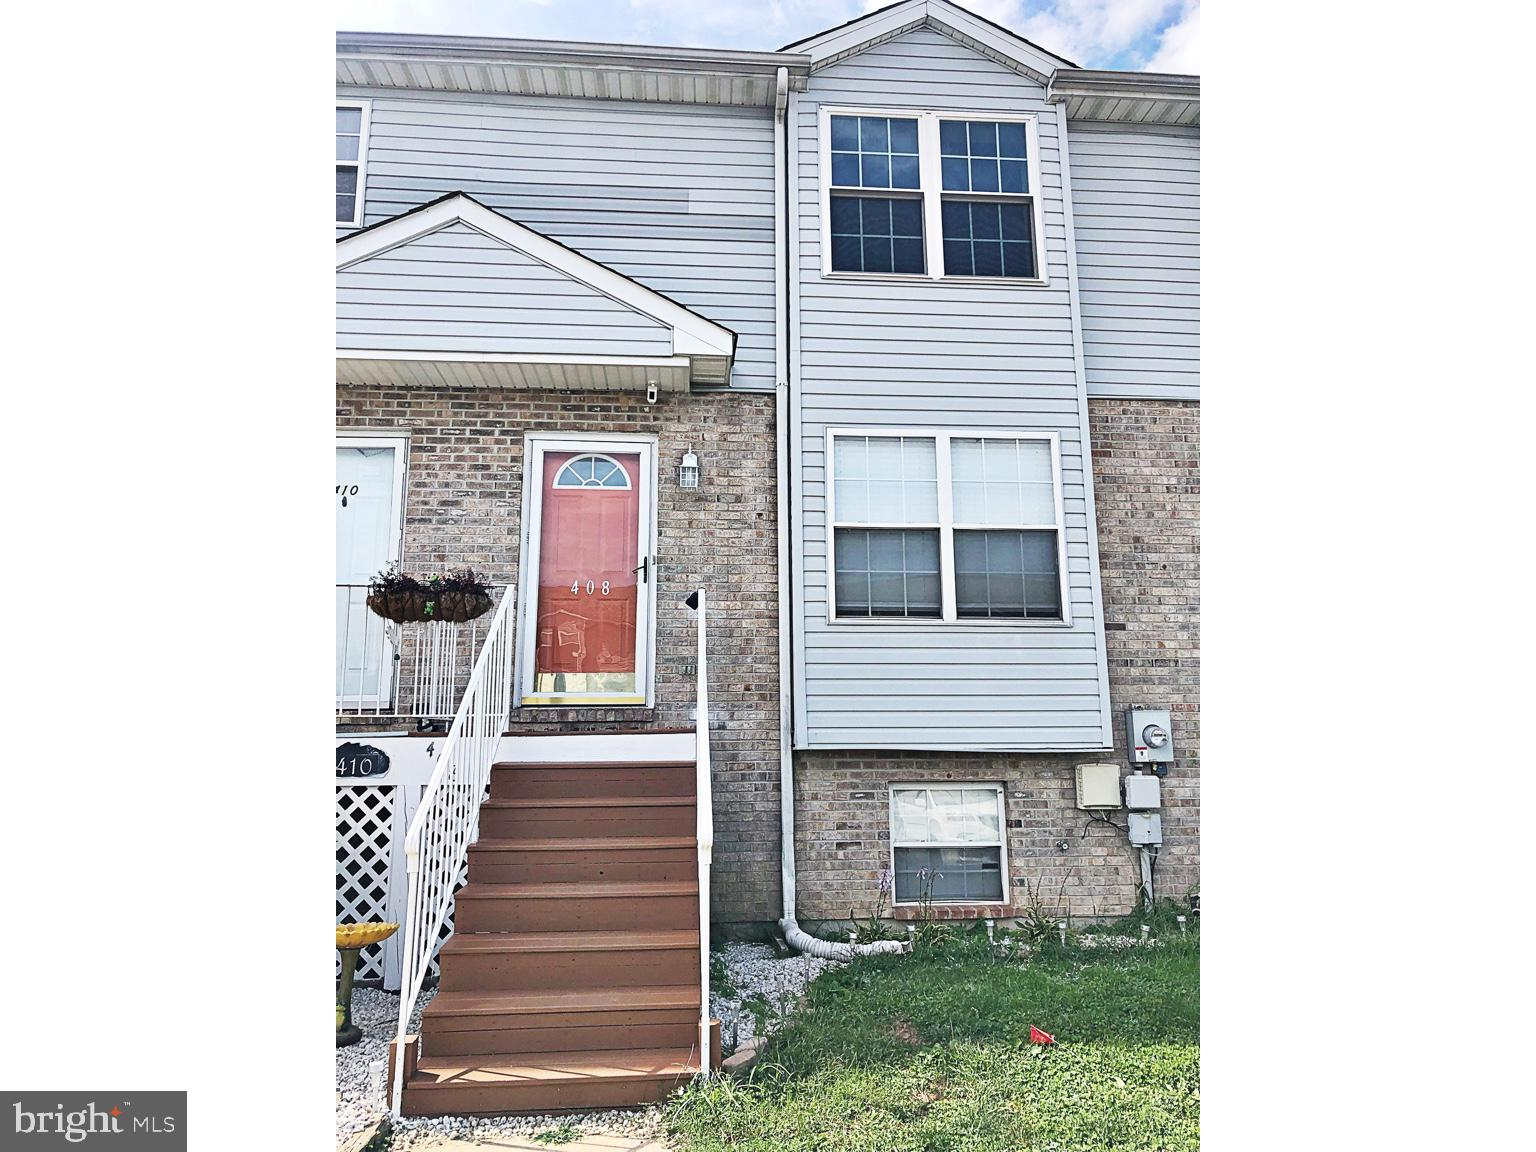 Get it while it's hot!  Three bedroom, one and a half bath townhome with finished basement in Middletown Village.  New roof September 2020, new upstairs windows November 2020 and new downstairs windows coming in, fresh paint and flooring!   This one won't last!